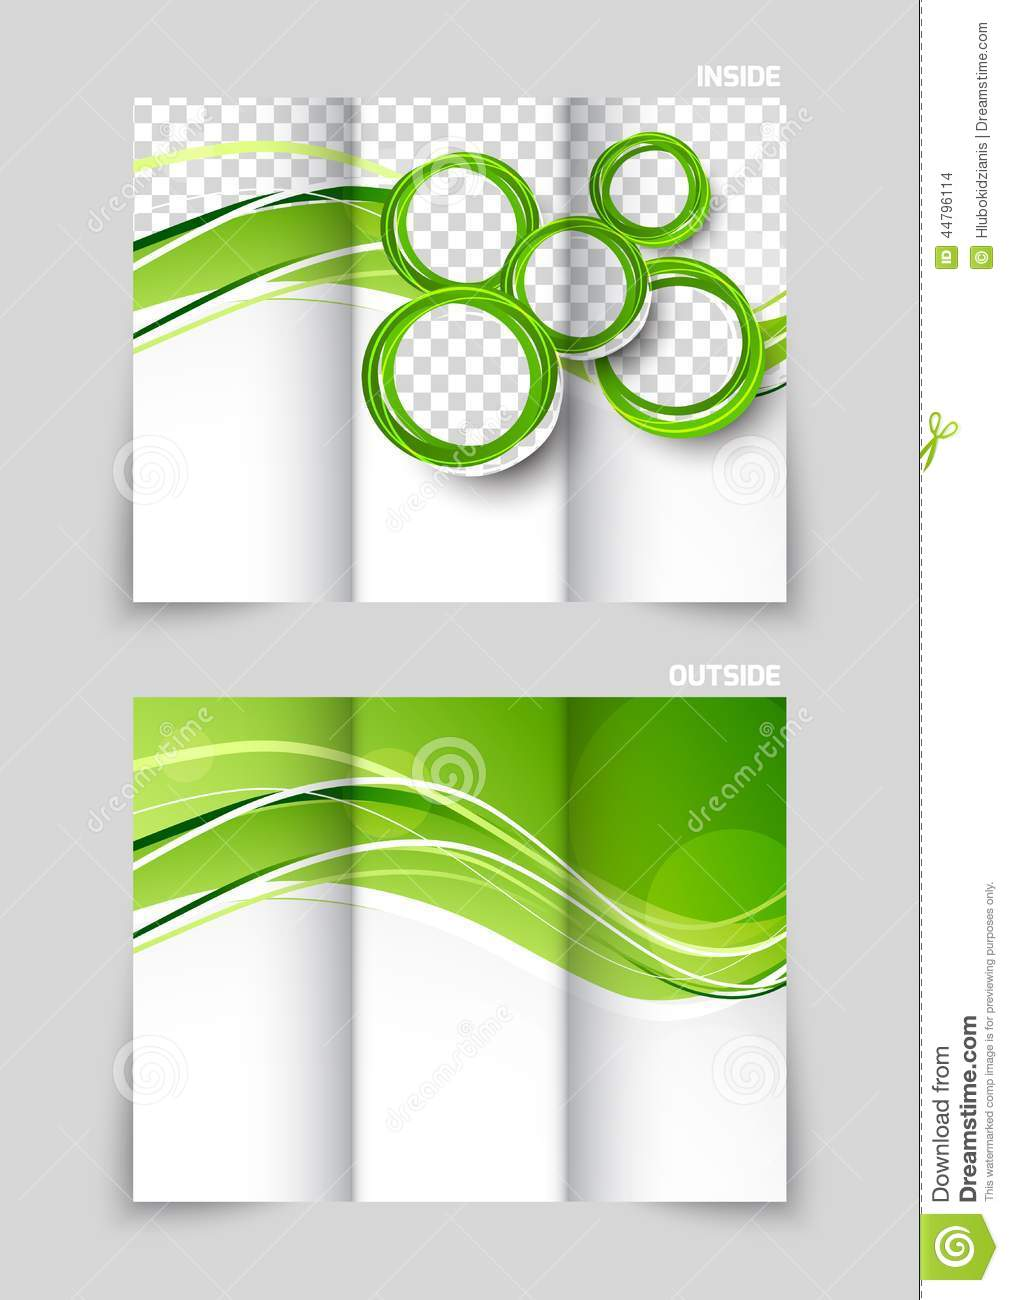 Trifold Brochure Template Design Stock Vector Illustration Of - Tri fold brochure templates free download